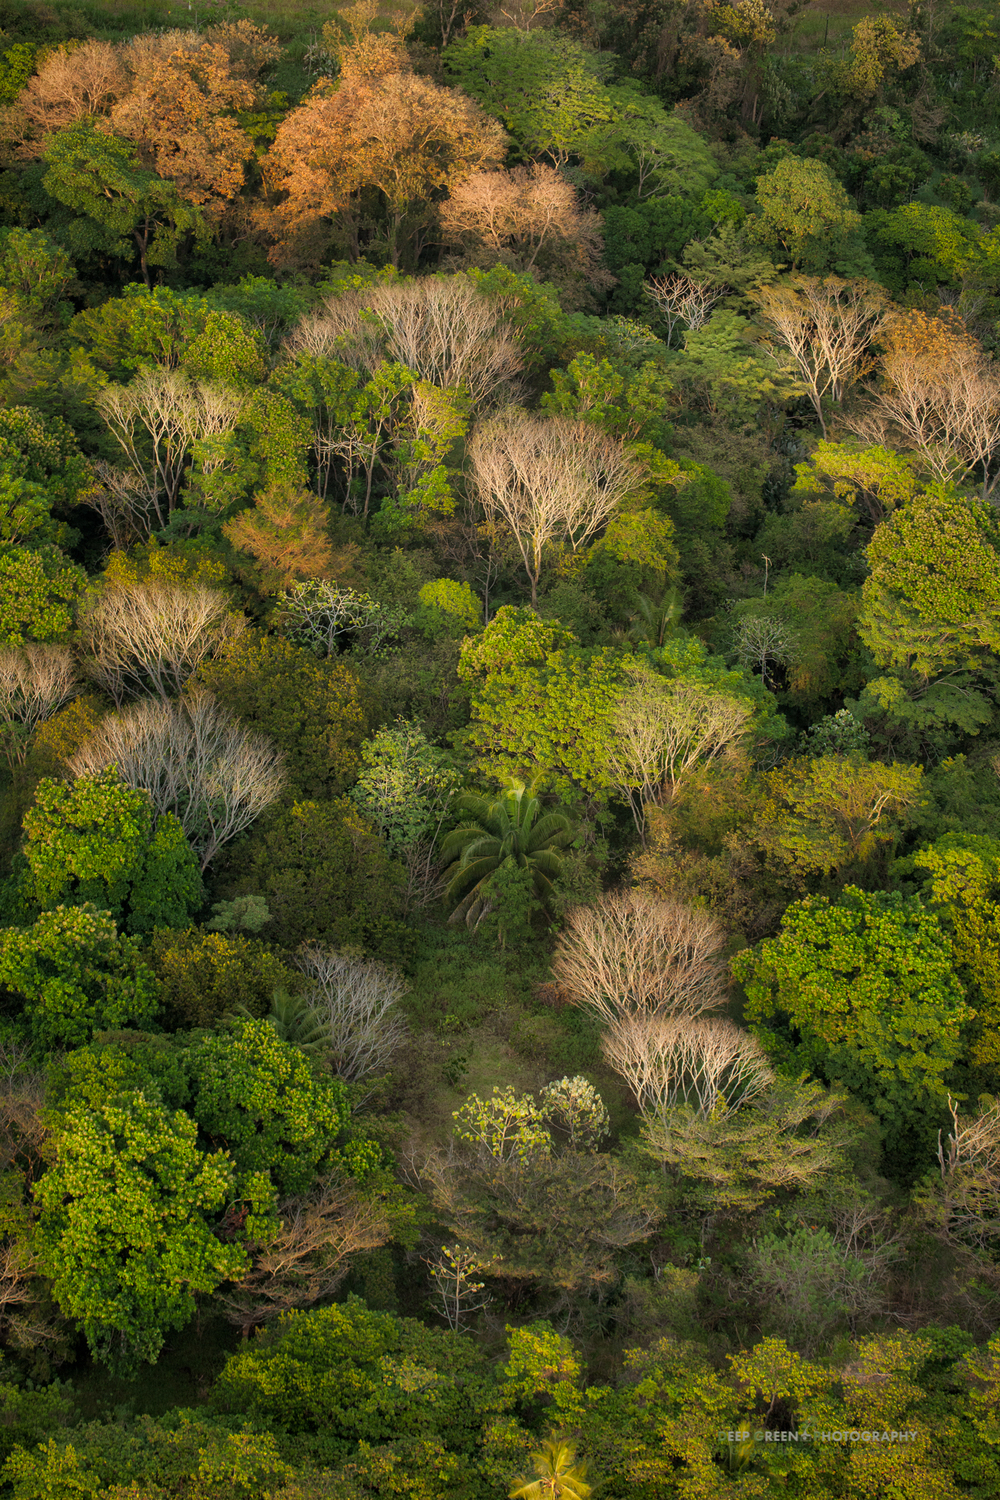 The rainforests of Costa Rica's Central Pacific Coast have a number of decidous trees that shed their leaves in the dry season